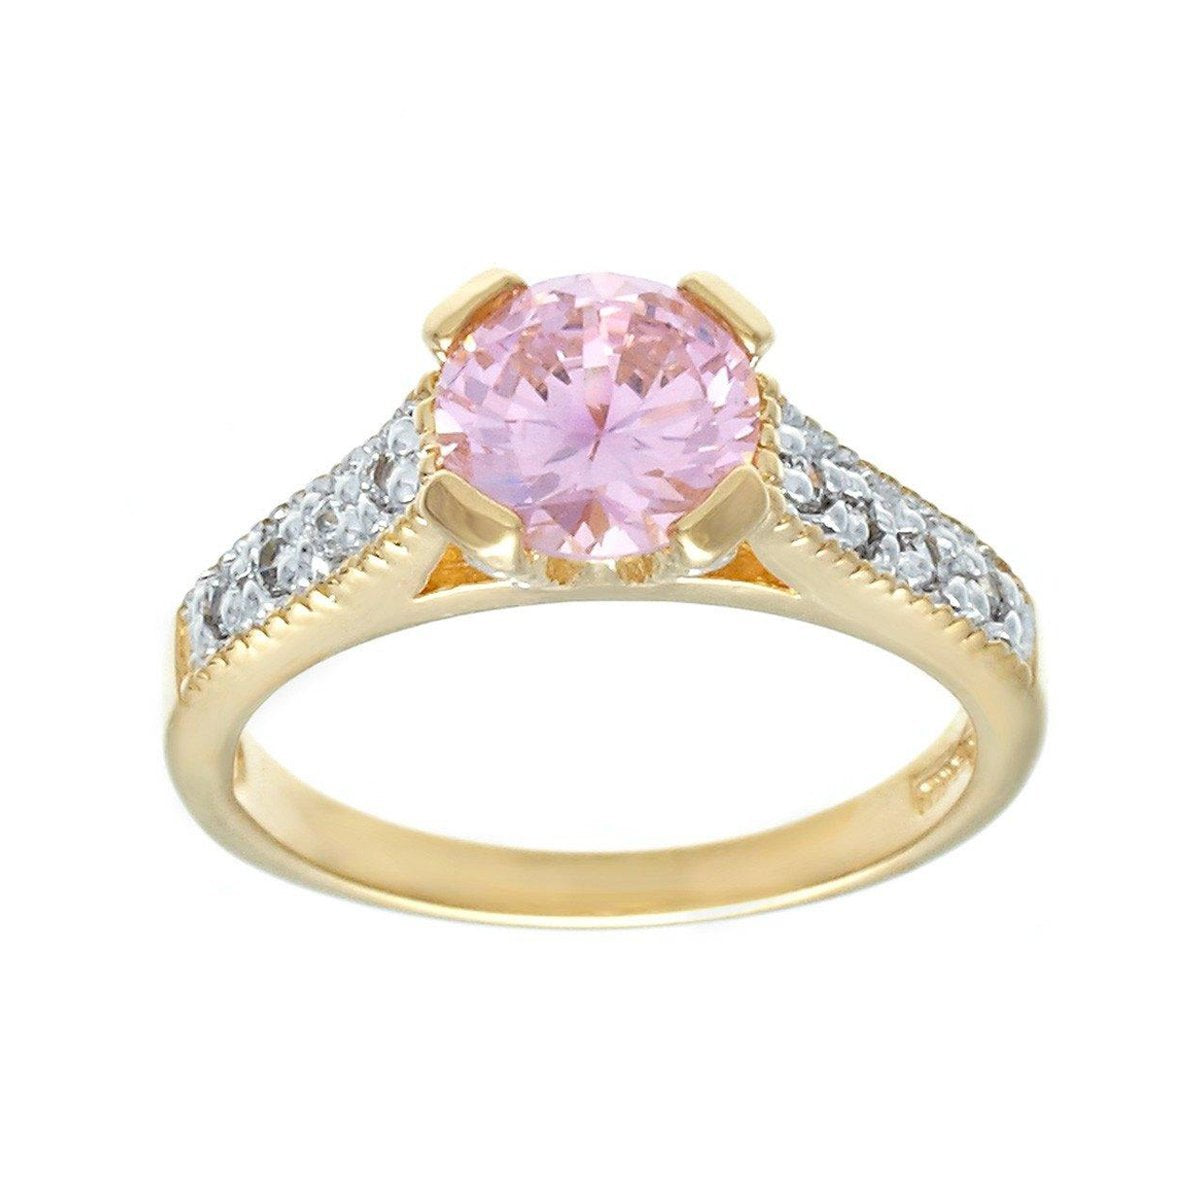 Very Fine Classic Engagement Style Solitaire Two